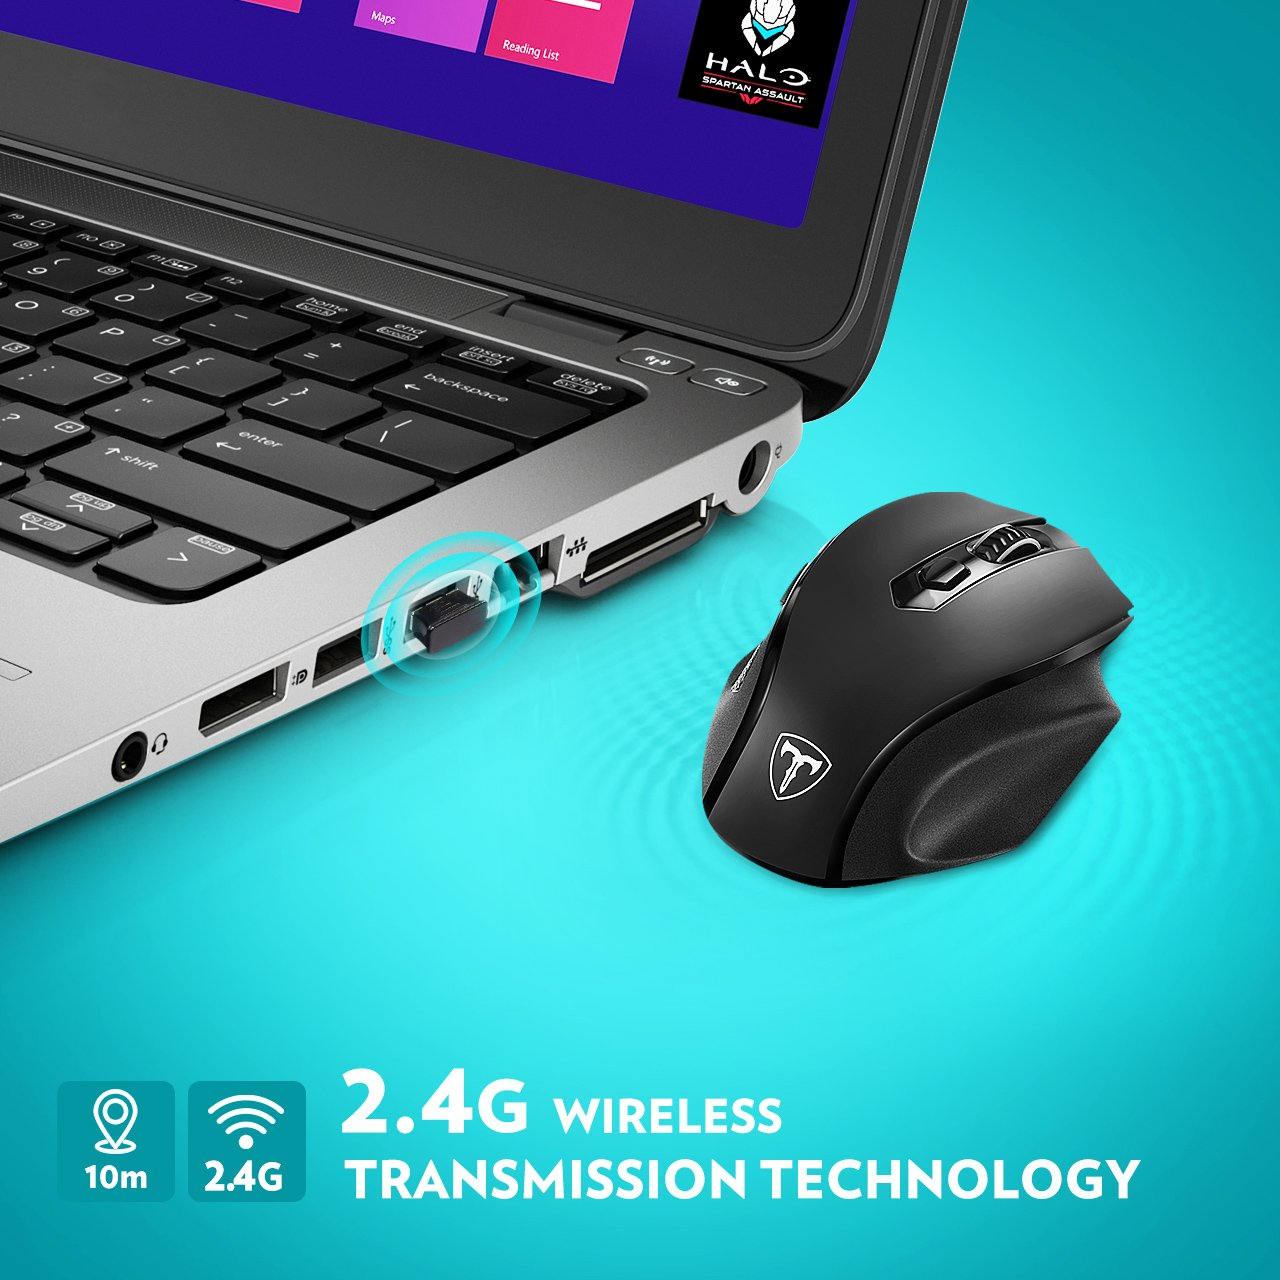 VicTsing Full Size Wireless Mouse with Nano USB Receiver, 5 Adjustable CPI Levels, 6 Buttons for Notebook, PC, Laptop, Computer, Macbook-Black by VicTsing (Image #4)